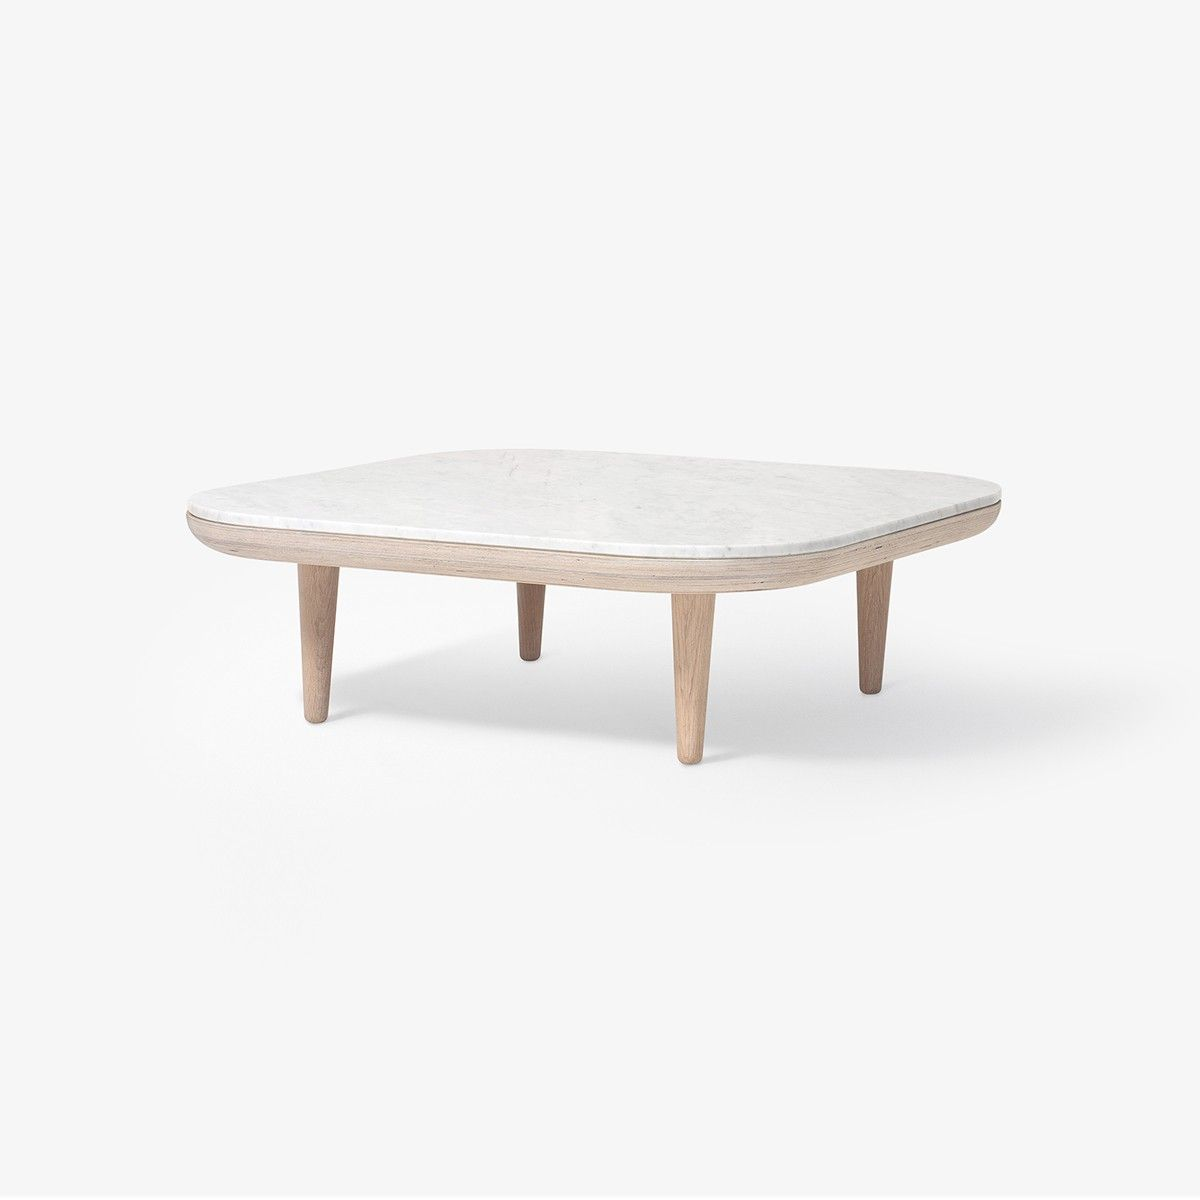 SC4 basse Tradition Blanc marbre Fly Table And QxtChdBsr